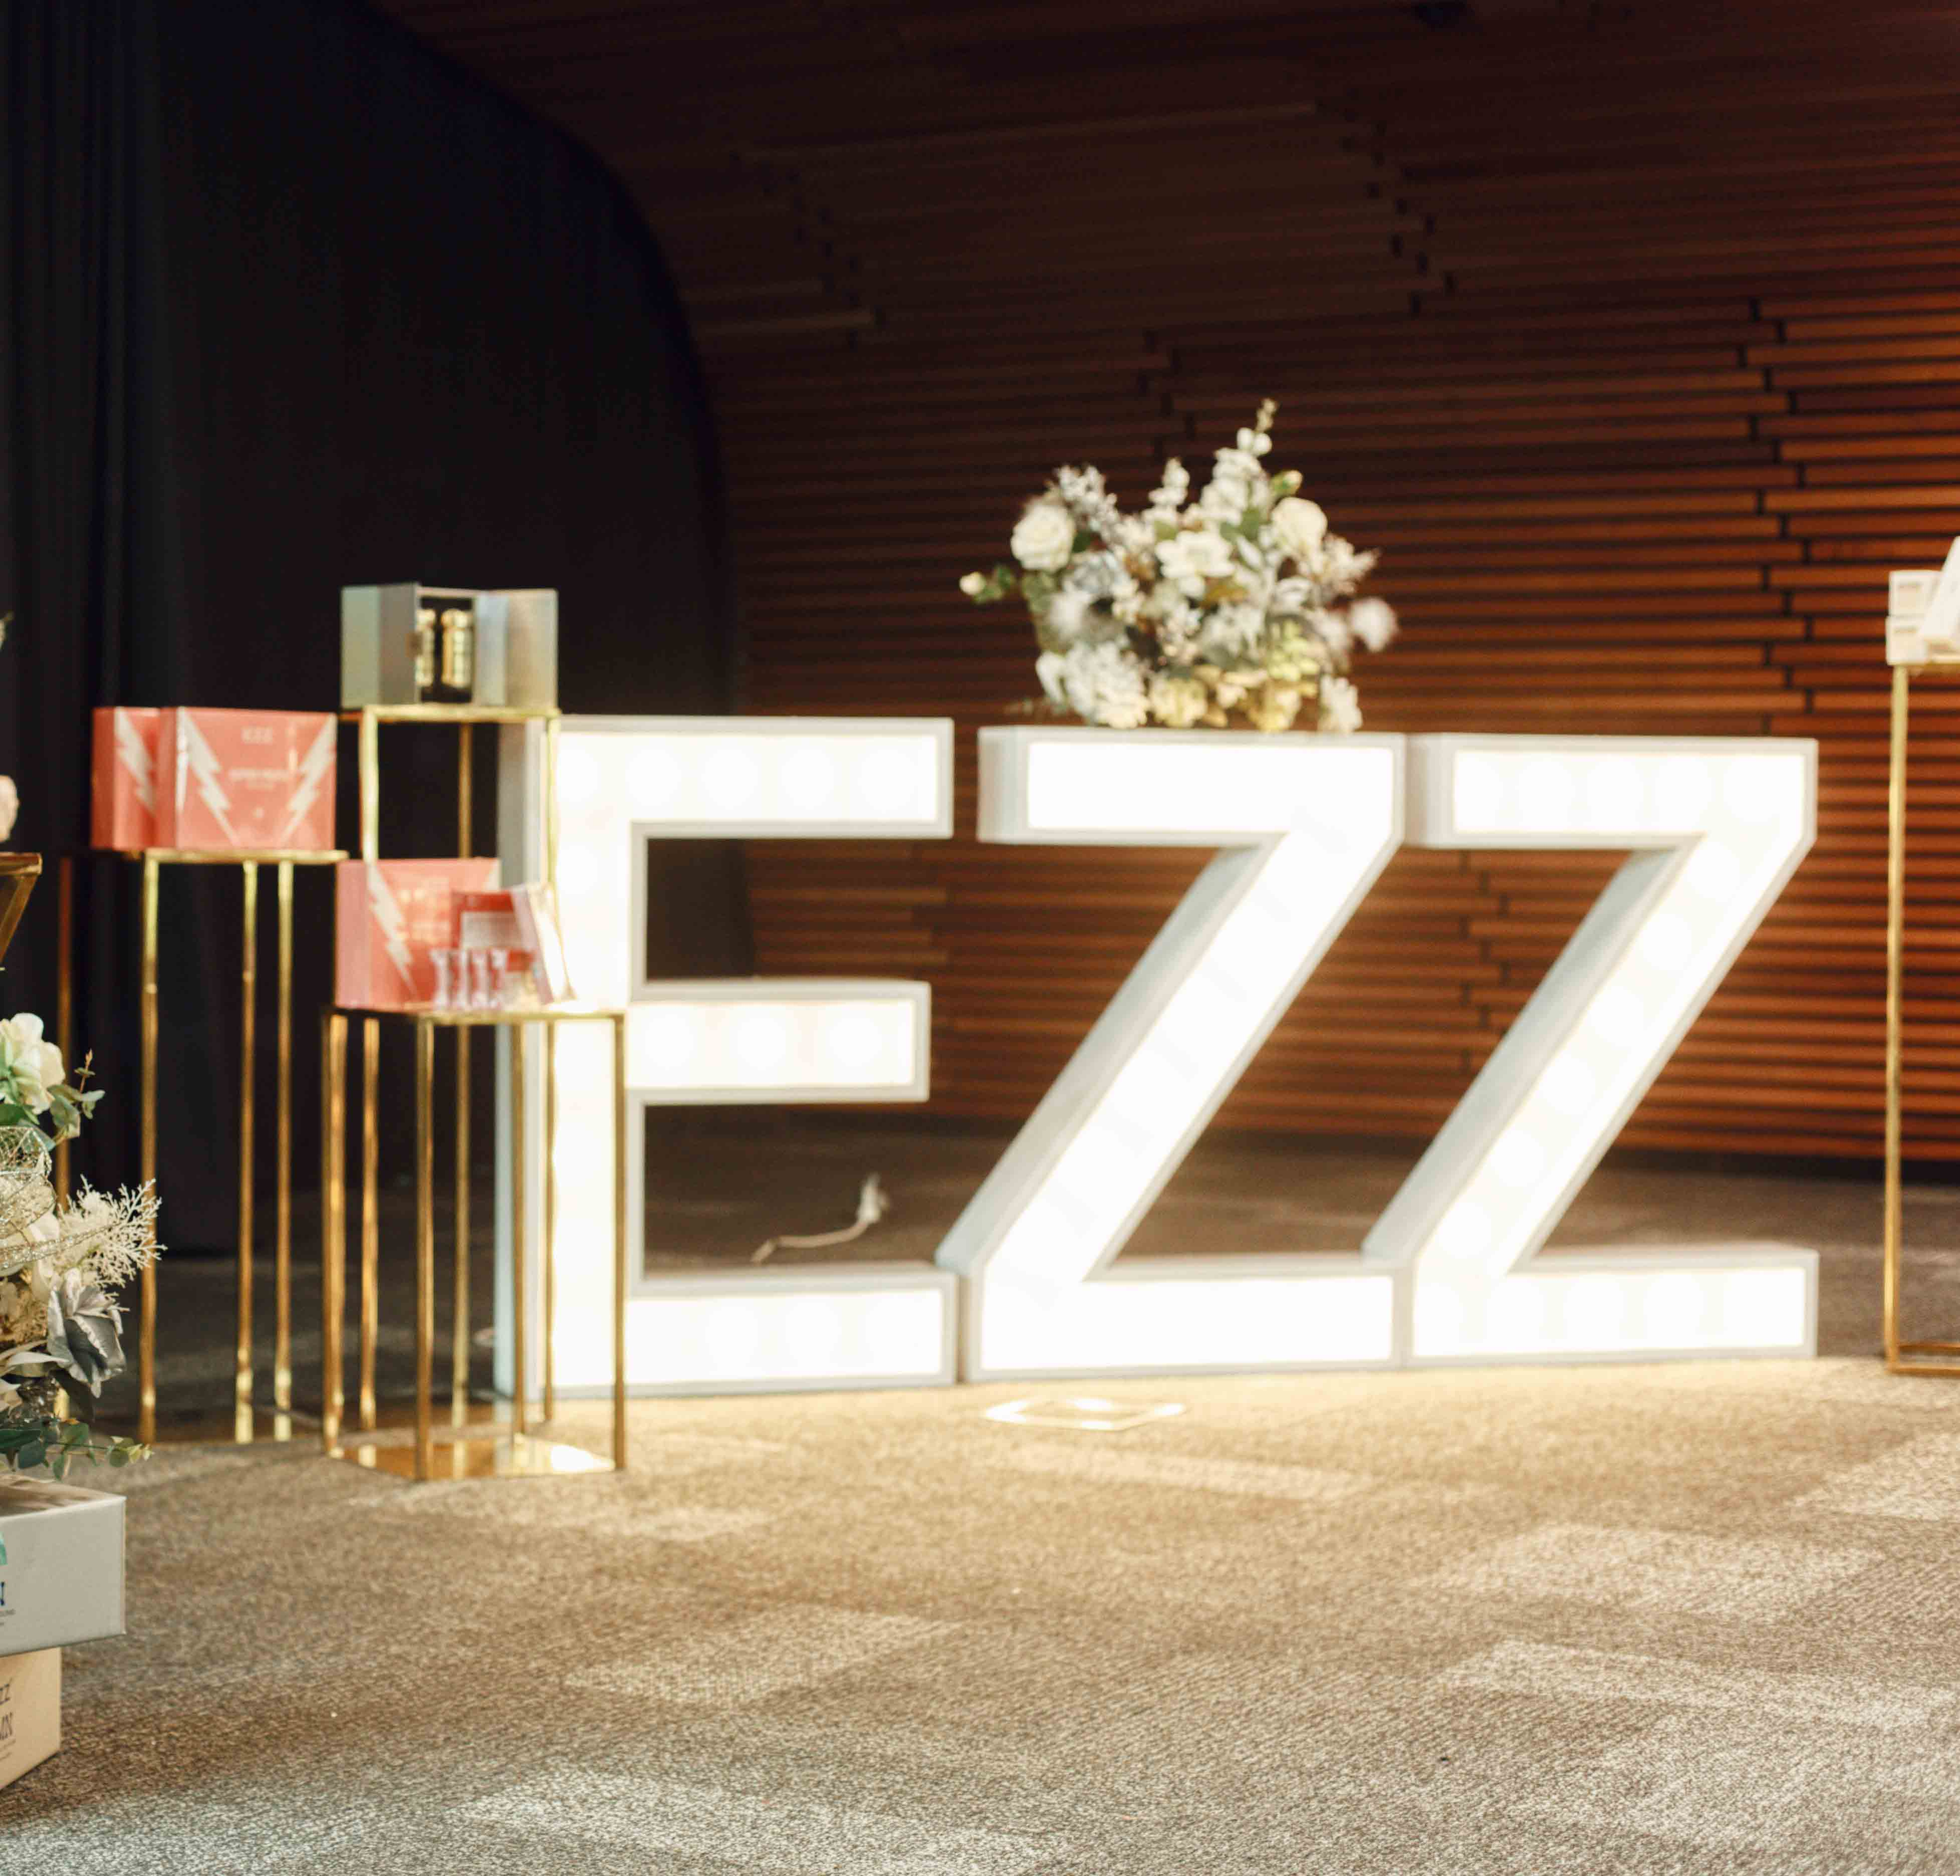 Hollow Gold Plinths and LED Letter Lights by Luxe Dream Event Hire / Flowers by Luxe Dream Floral Studio